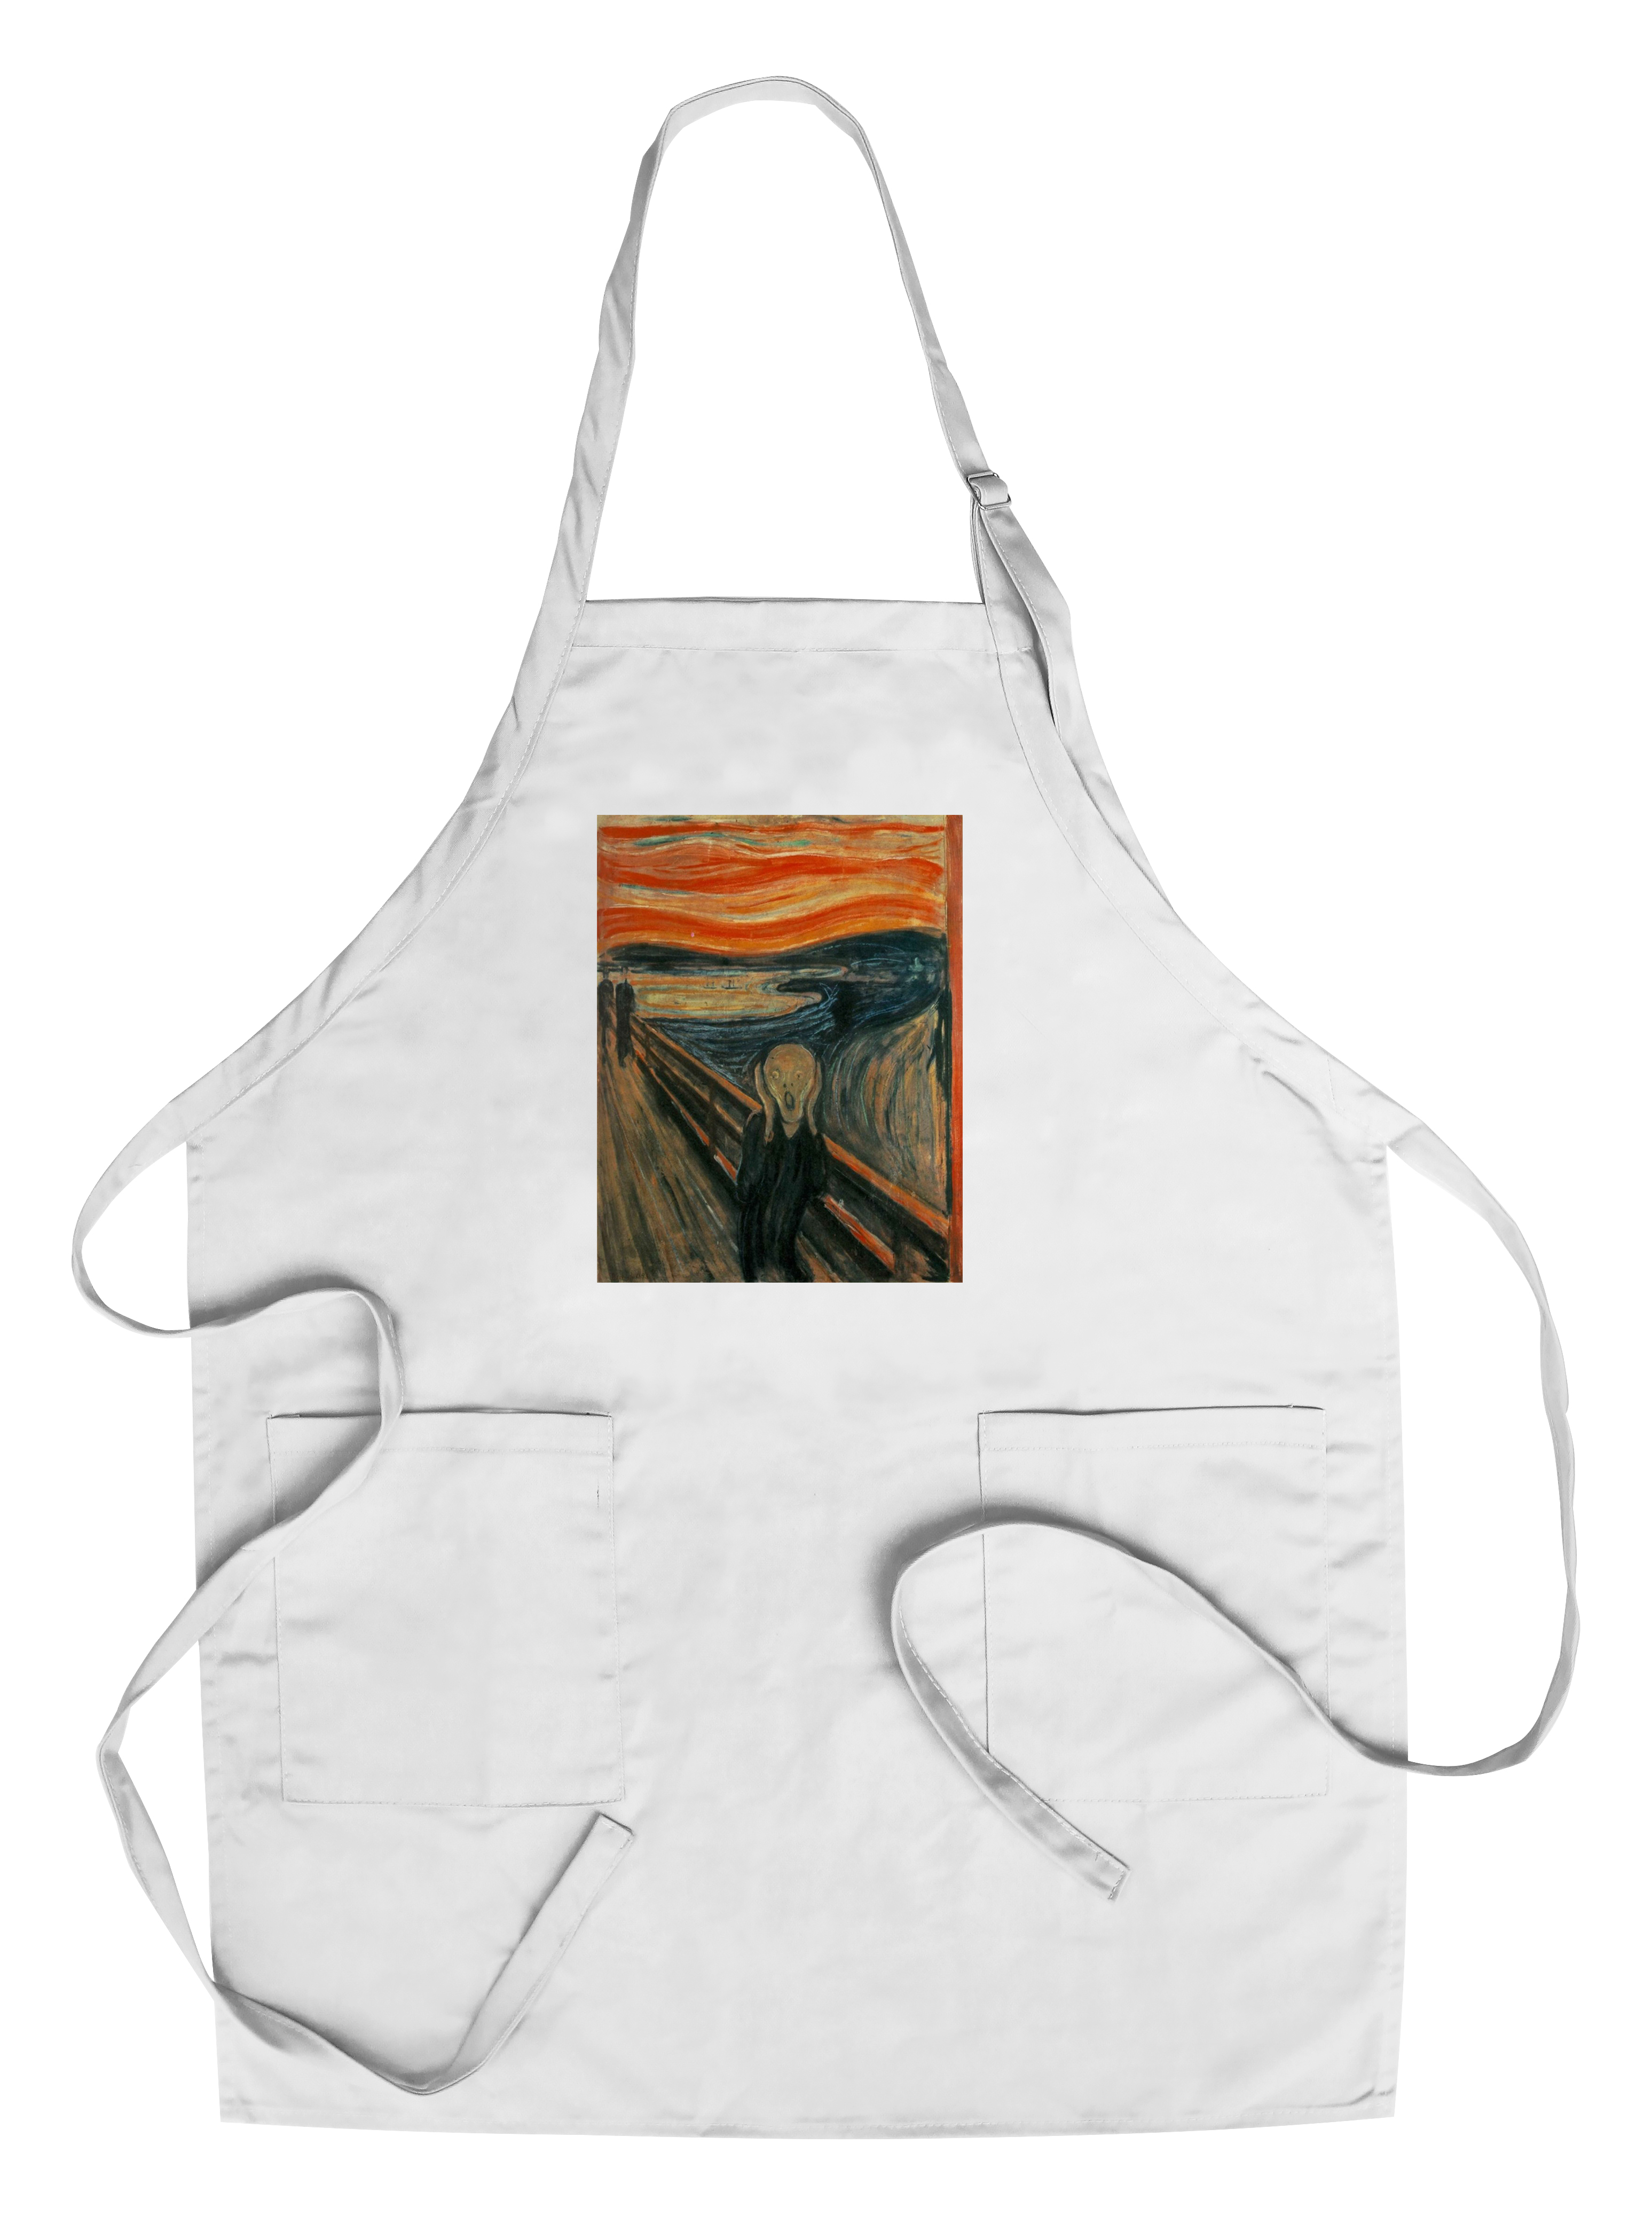 3dRose Pharmacy Rocks Apron 22 x 30